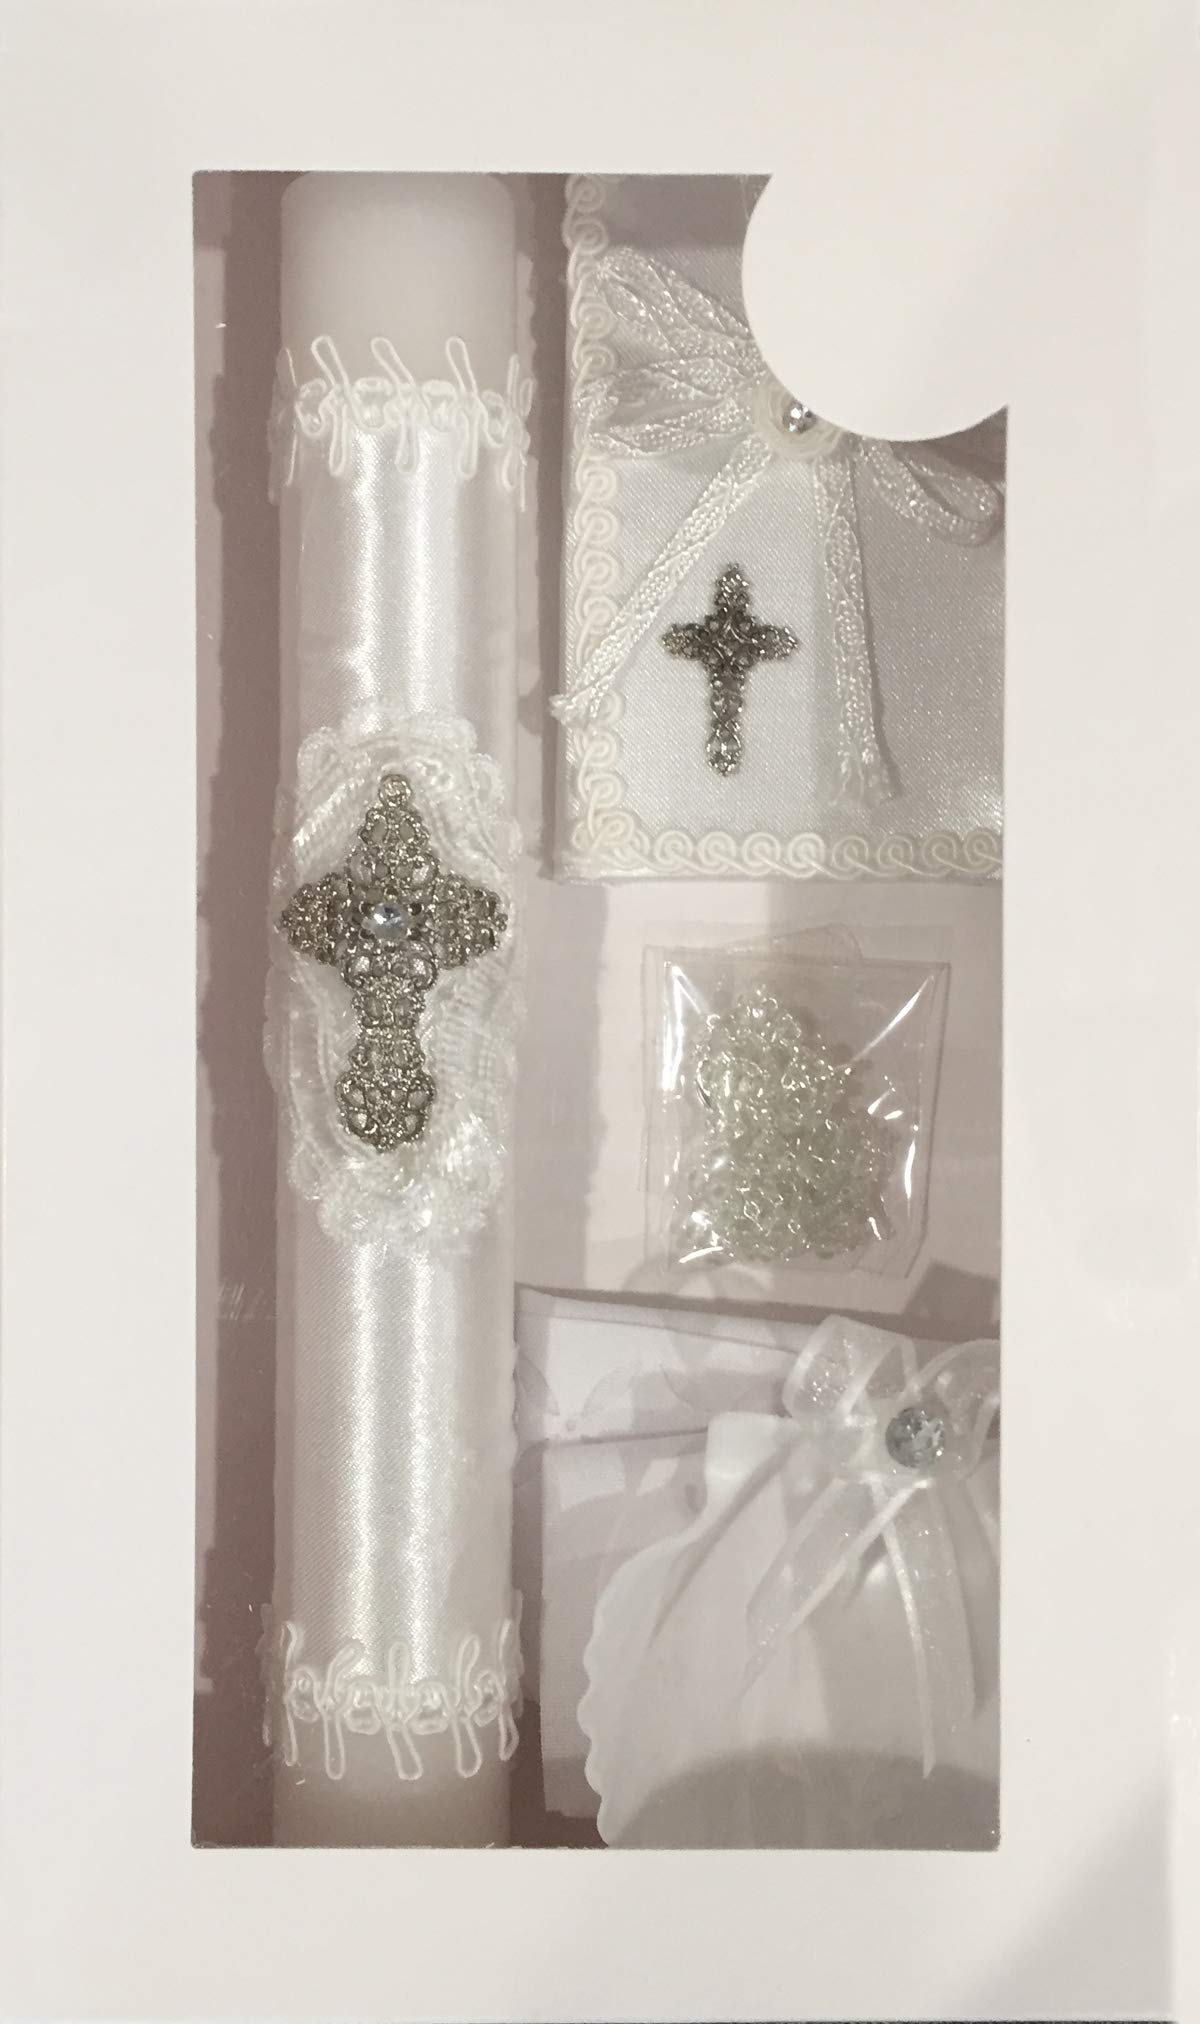 New Boys or Girls Baptism Christening Candle Box Gift 5 Pc Set Shell Missal Book in English